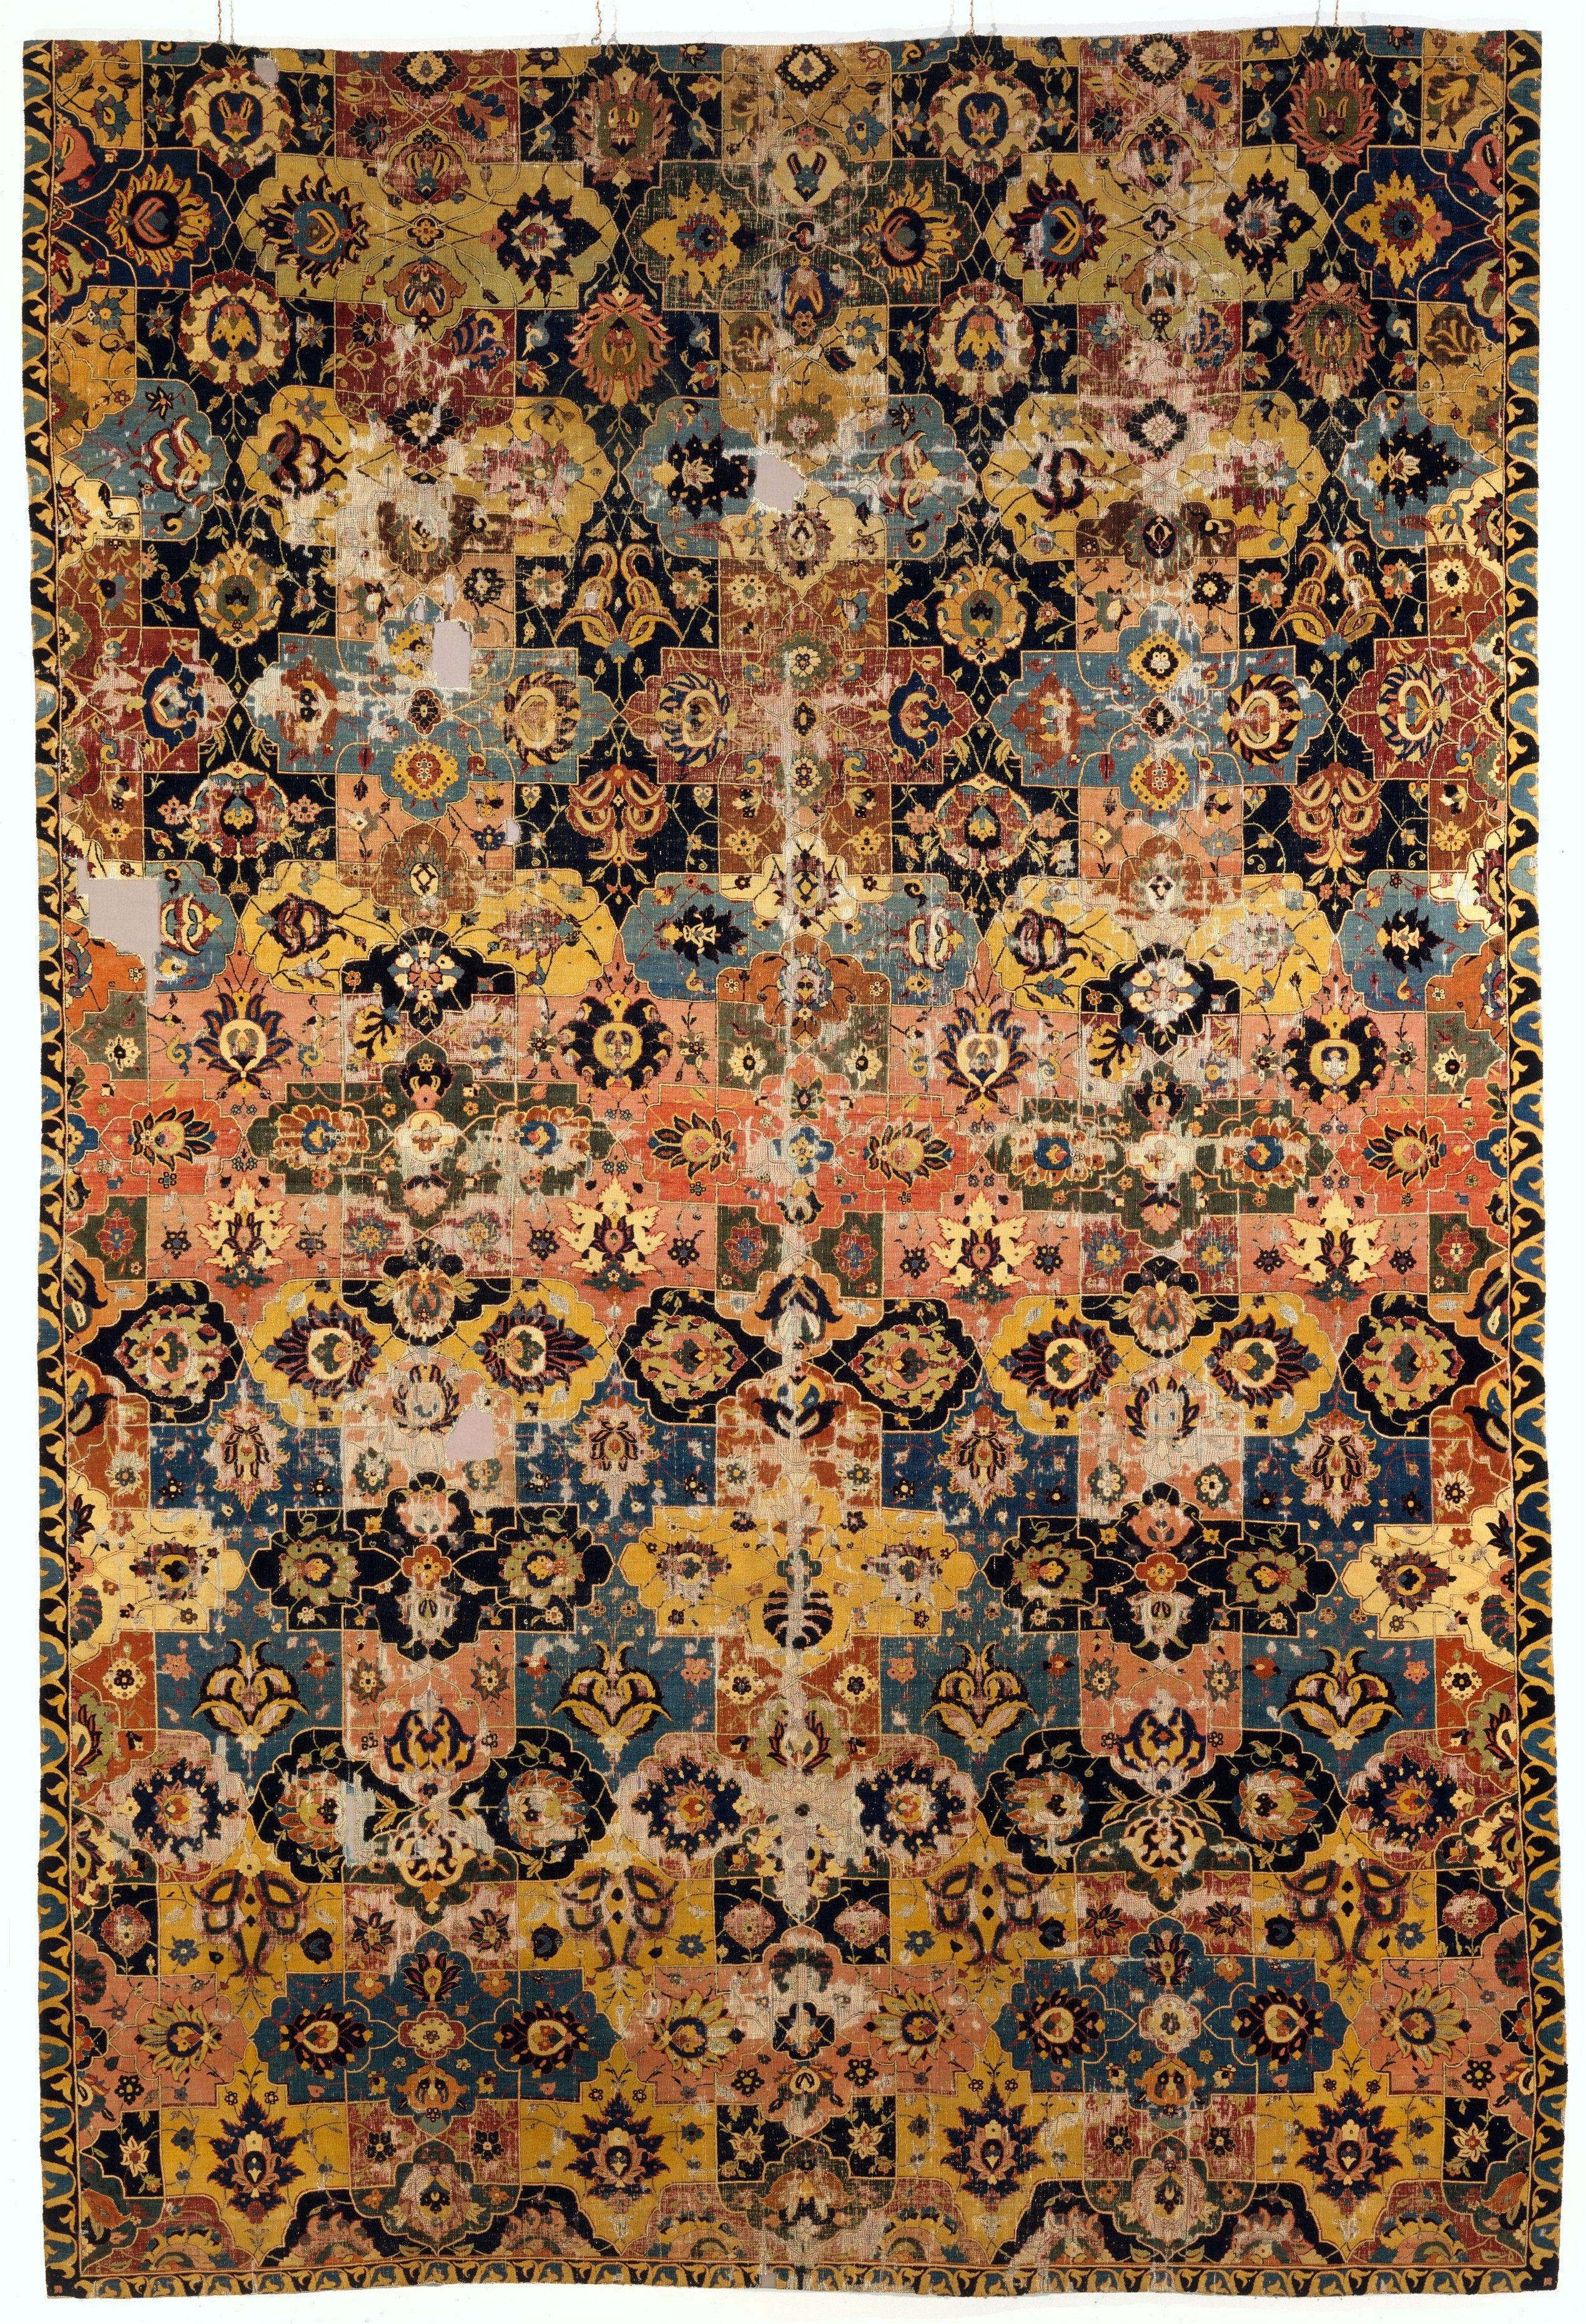 Vase-technique Carpet with Overlapping Cartouches Object Name: Carpet Date: 17th century Geography: Iran, probably Kirman or Isfahan Culture: Islamic